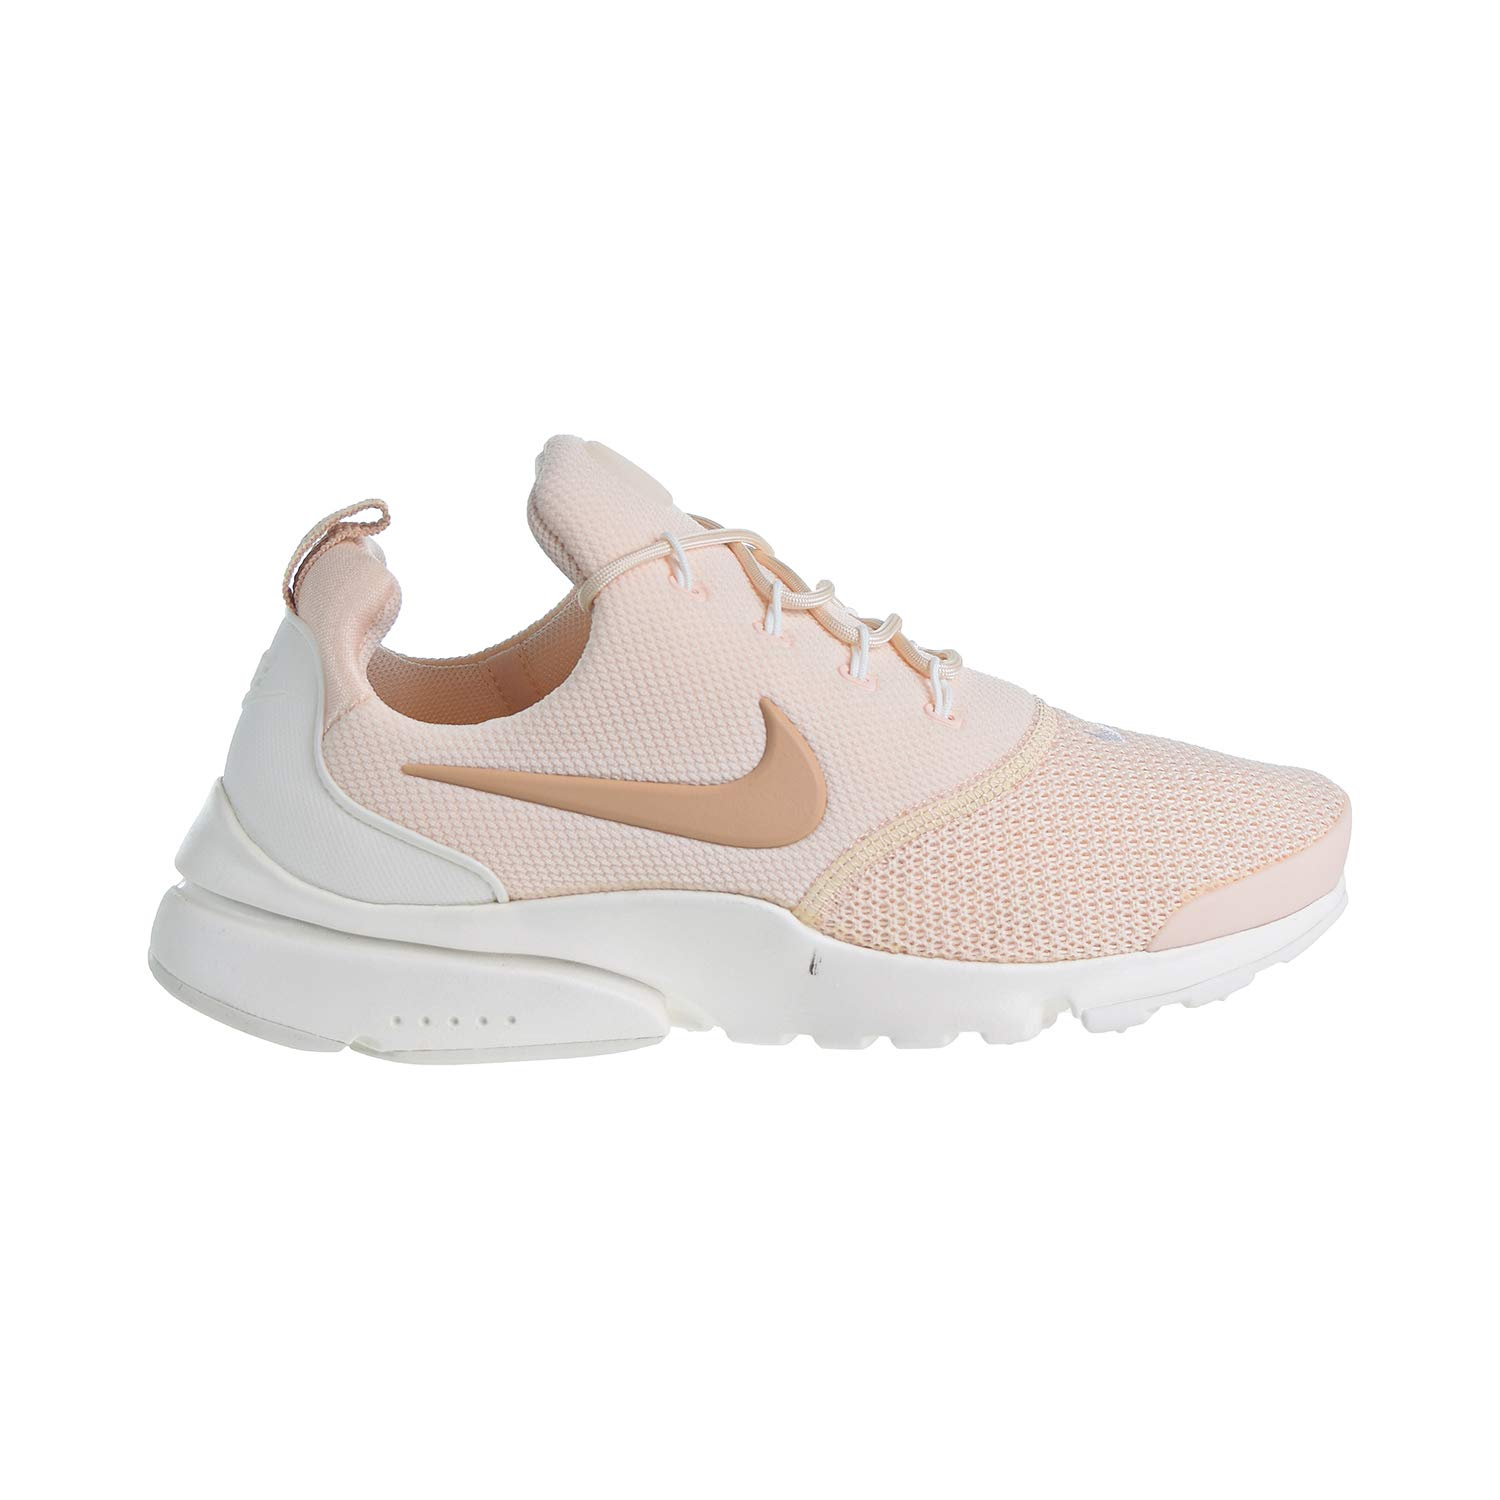 6f697c42dd076 Galleon - Nike Air Presto Fly Women s Shoes Guava Ice Bio Beige 910569-800  (8 B(M) US)